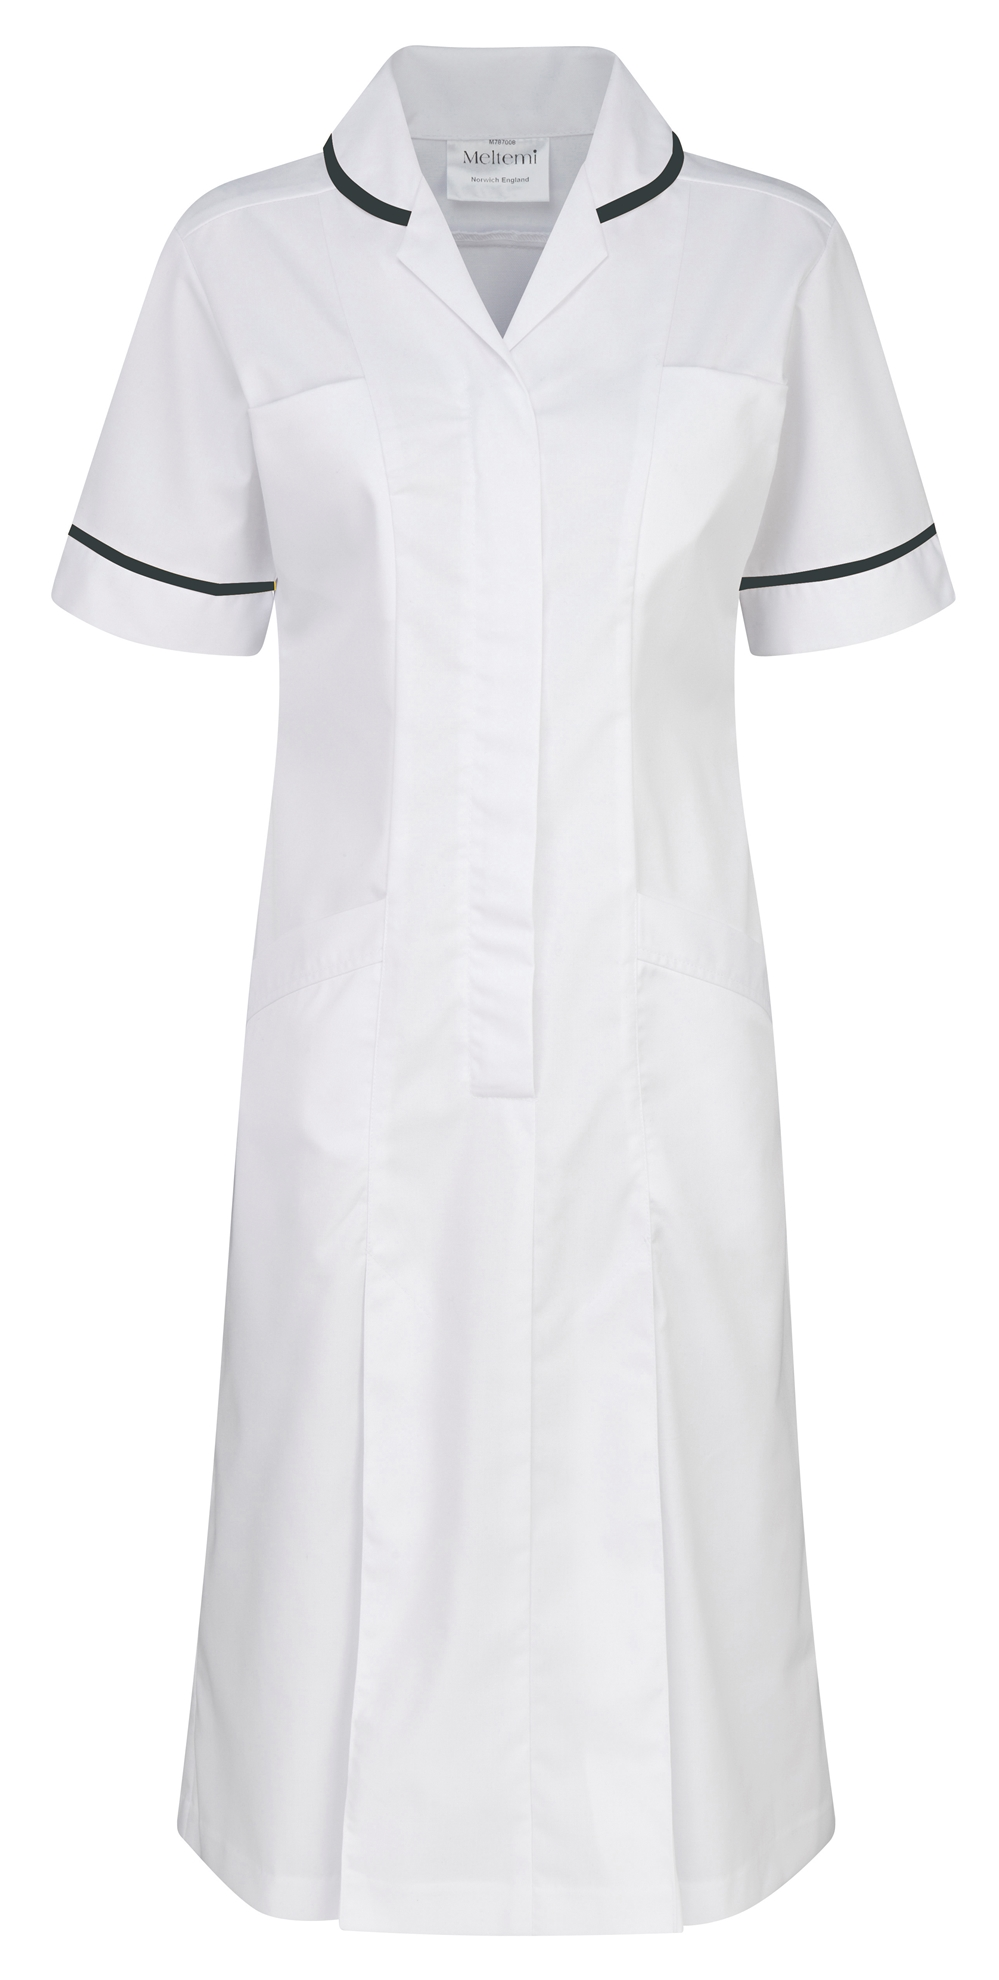 Picture of Plain Colour Dress - White/Navy